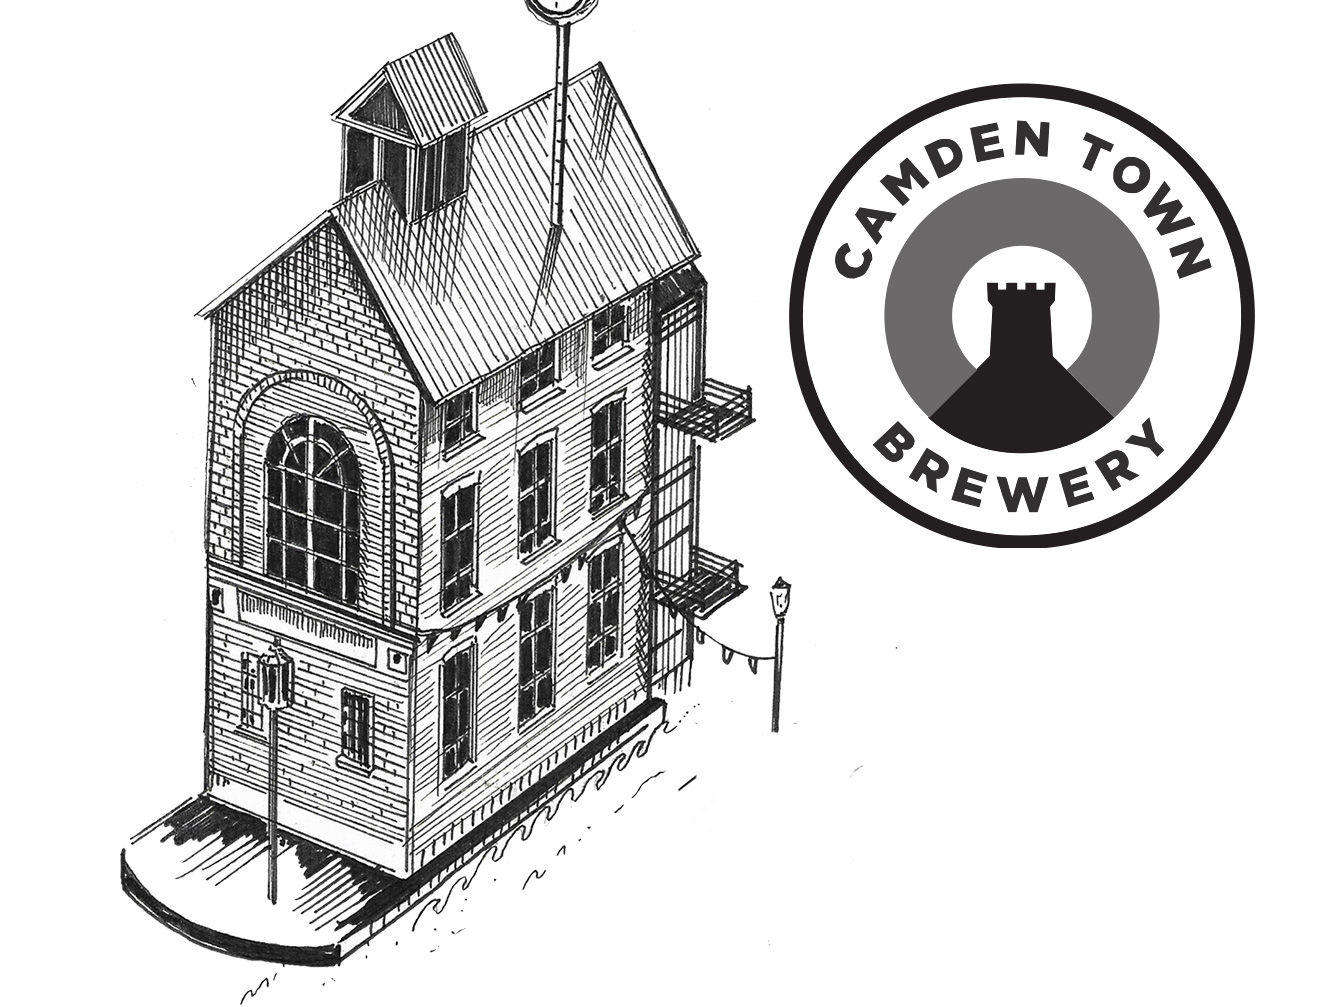 The Brewery Camden Town Brewery